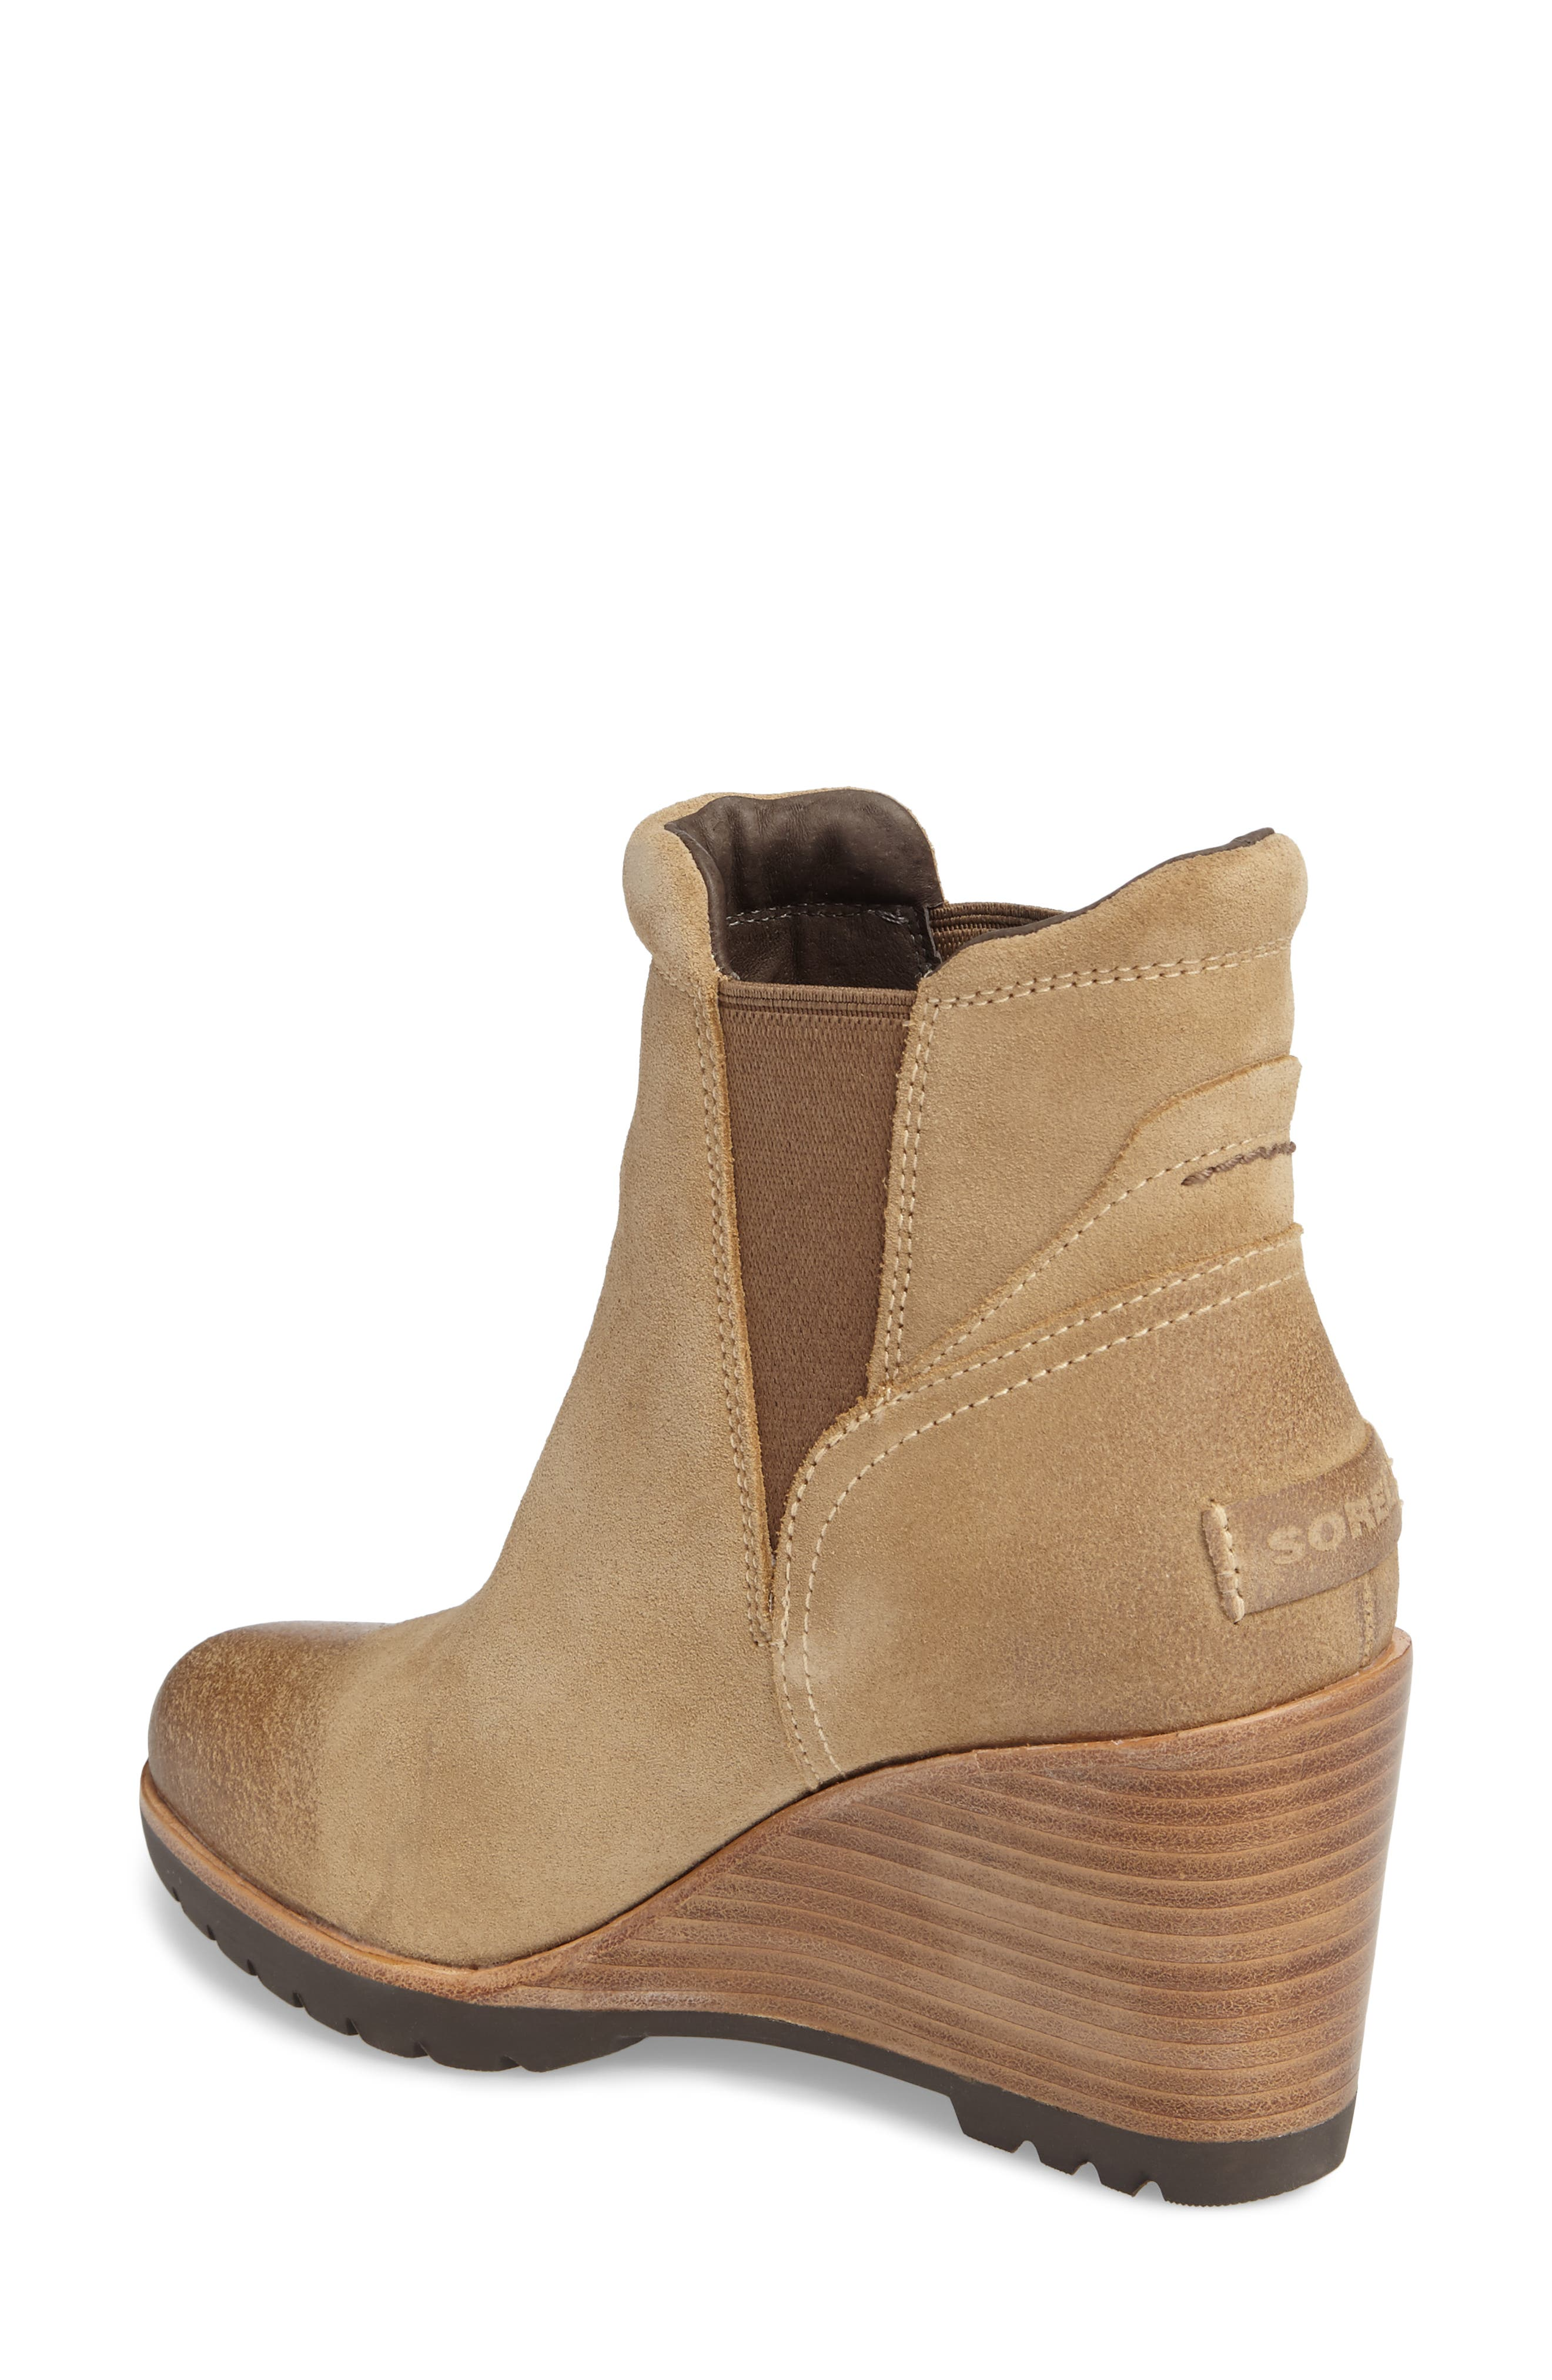 After Hours Chelsea Boot,                             Alternate thumbnail 9, color,